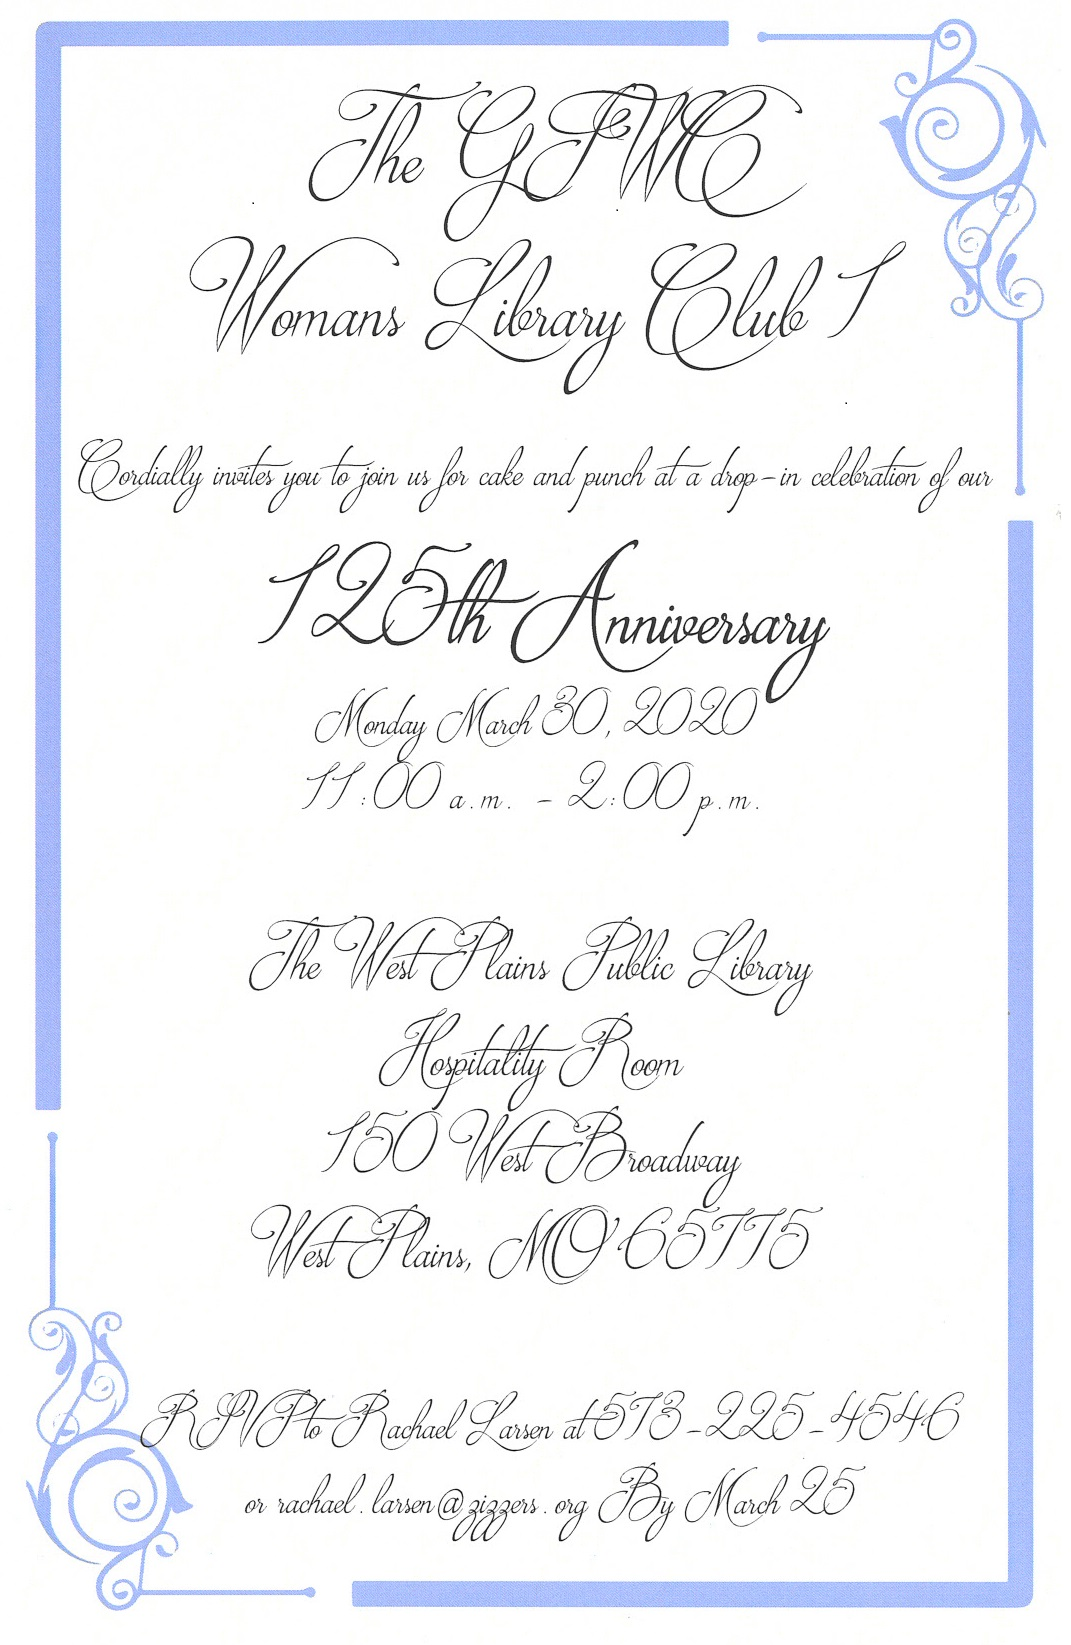 **Postponed**Womans Library Club 125th Anniversary @ West Plains Library